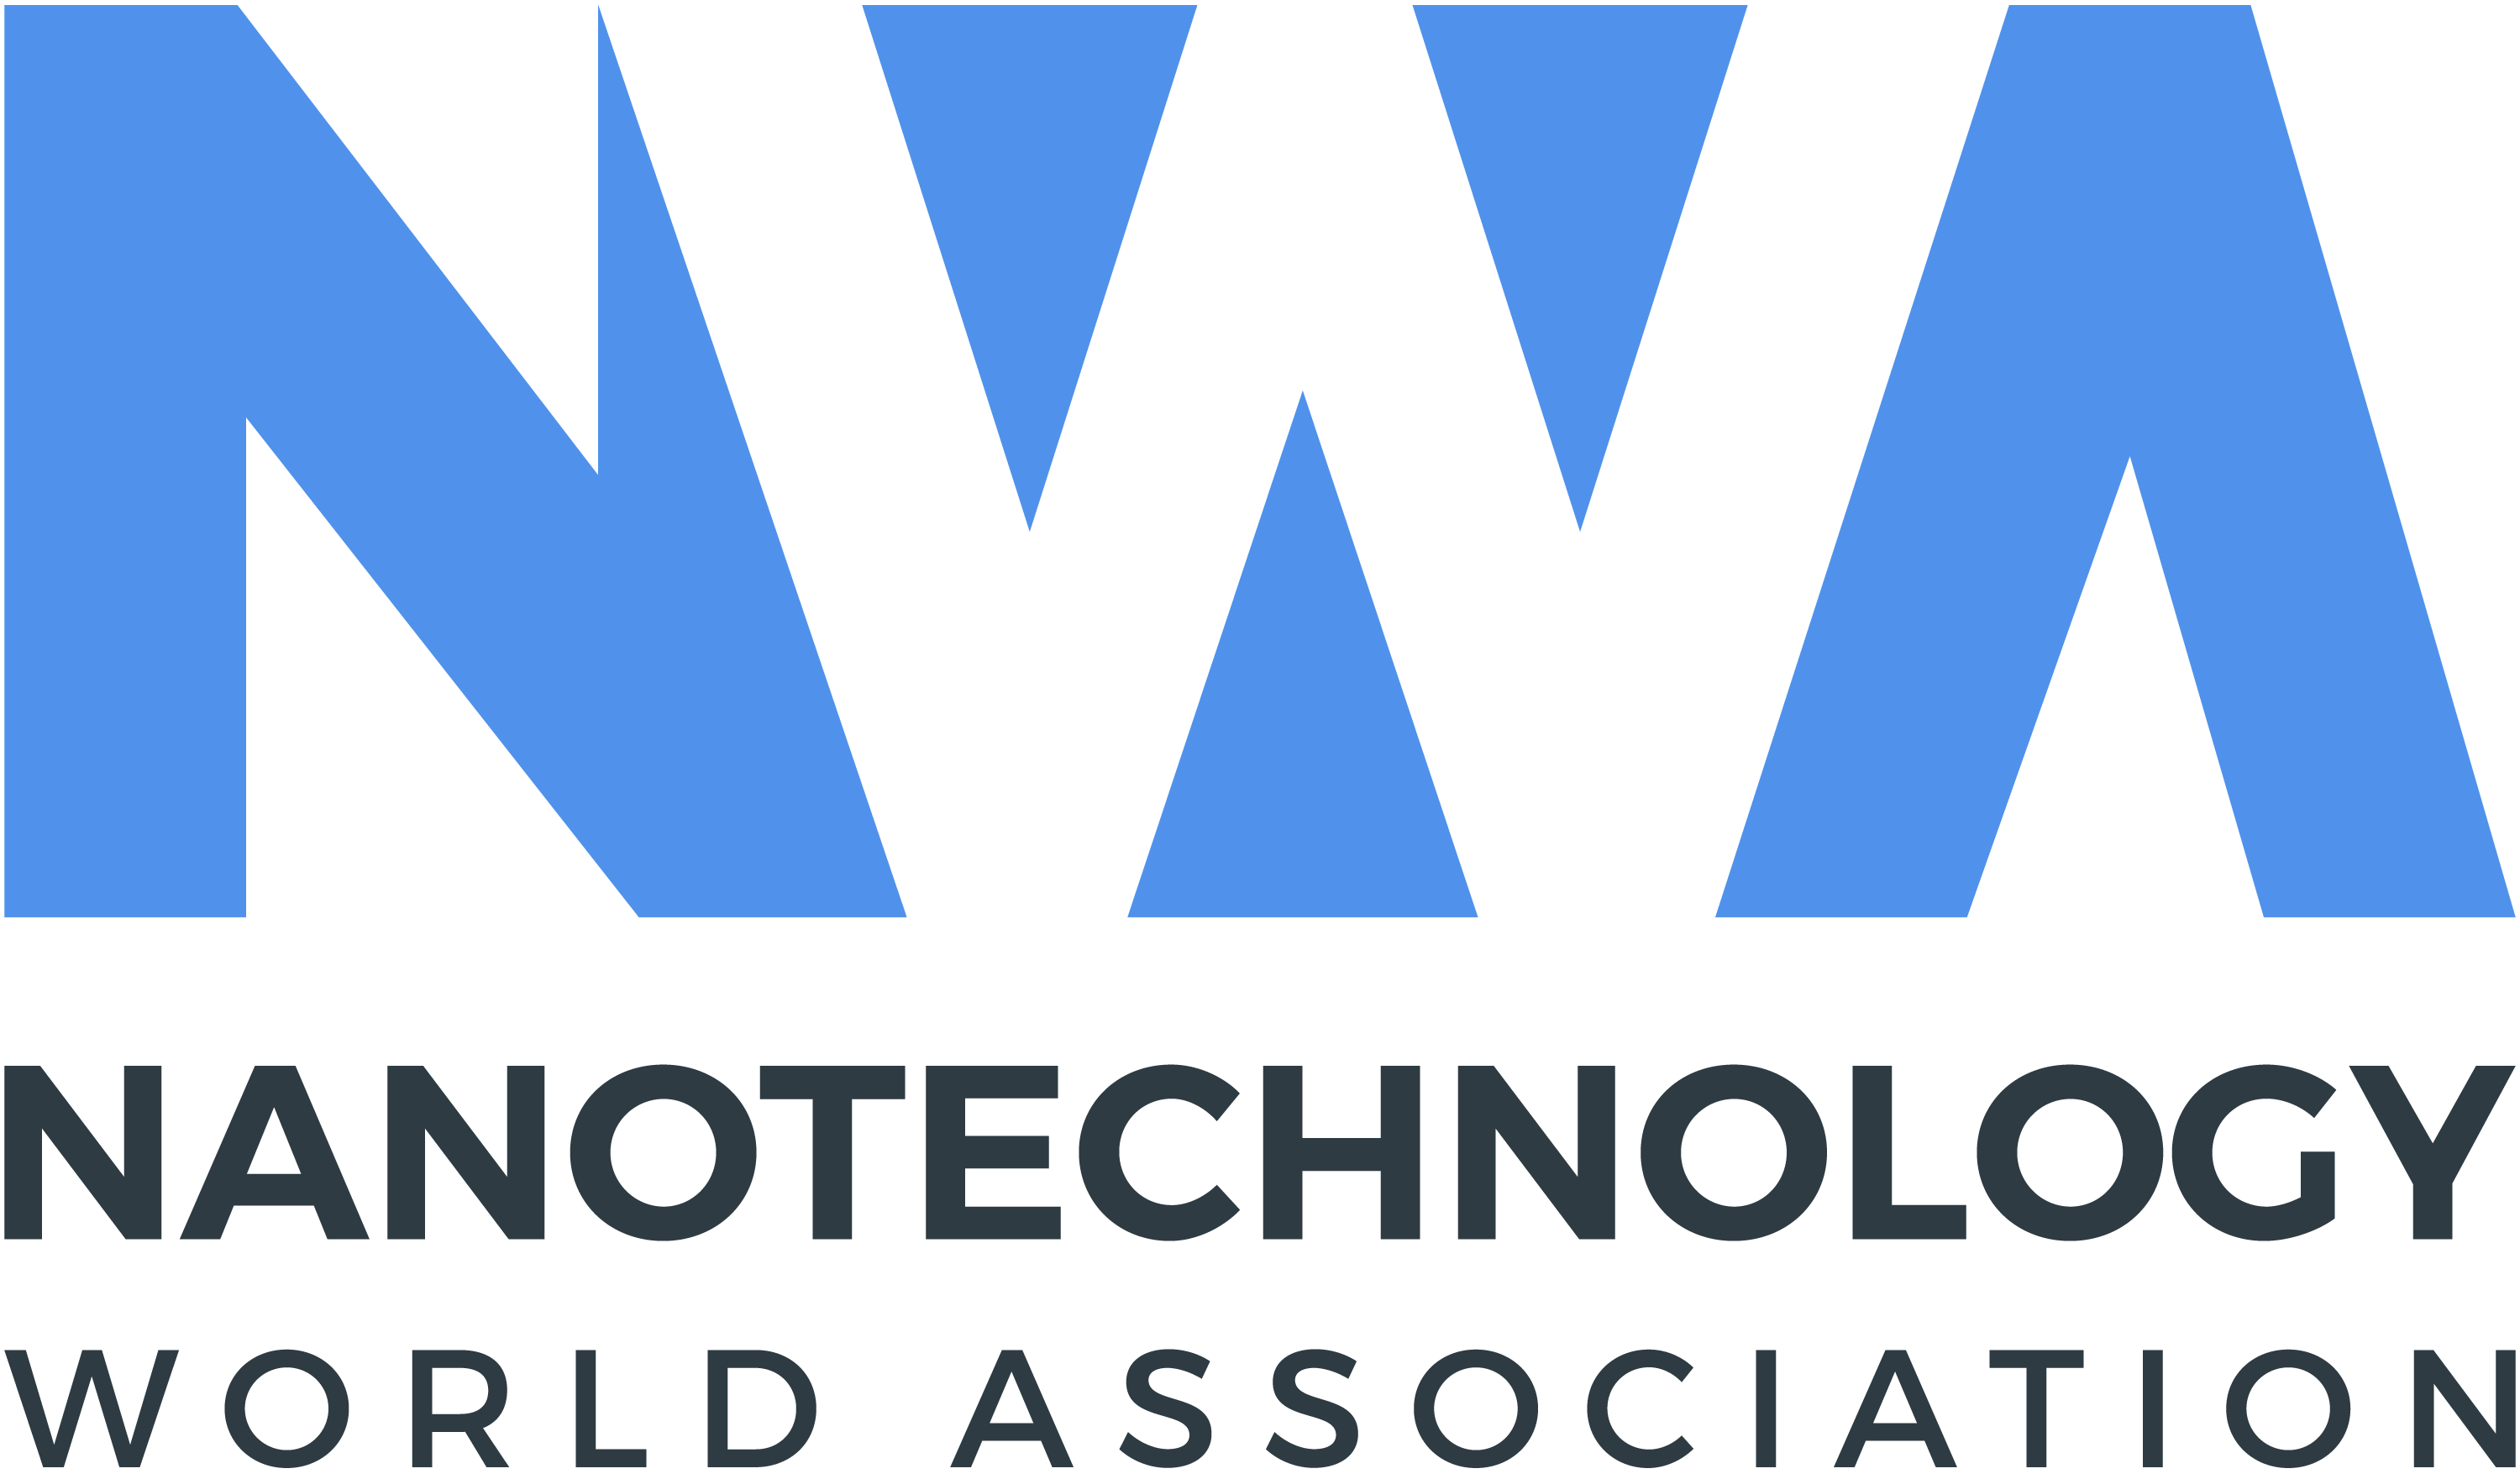 Nanotechnology World Association